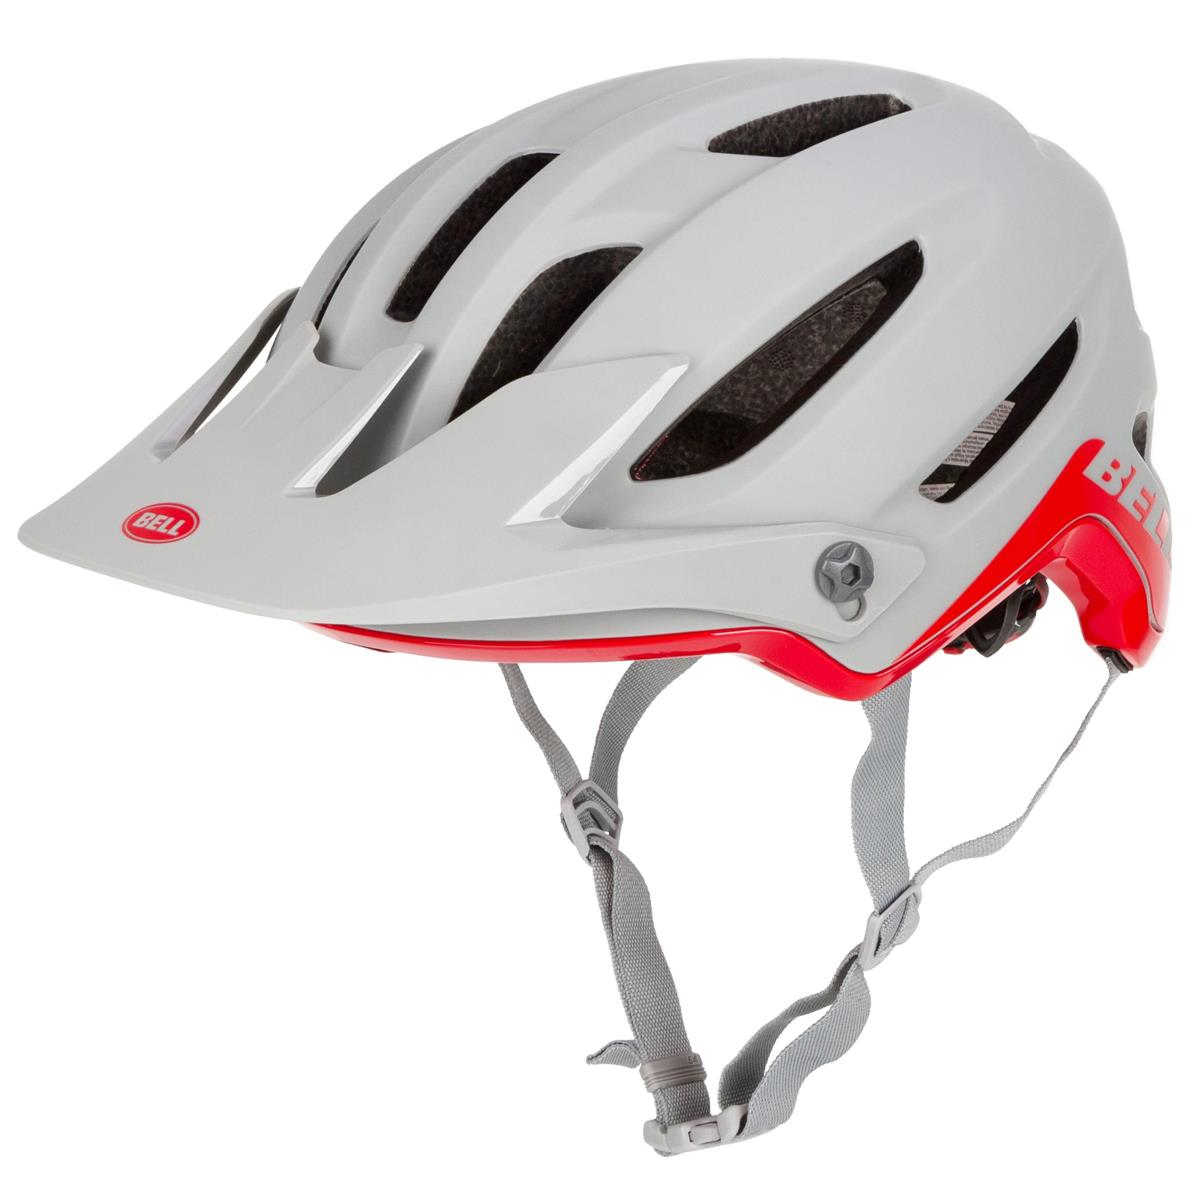 Bell Enduro-MTB Helm 4Forty Cliffhanger - Matt/Gloss Dunkelgrau/Crimson